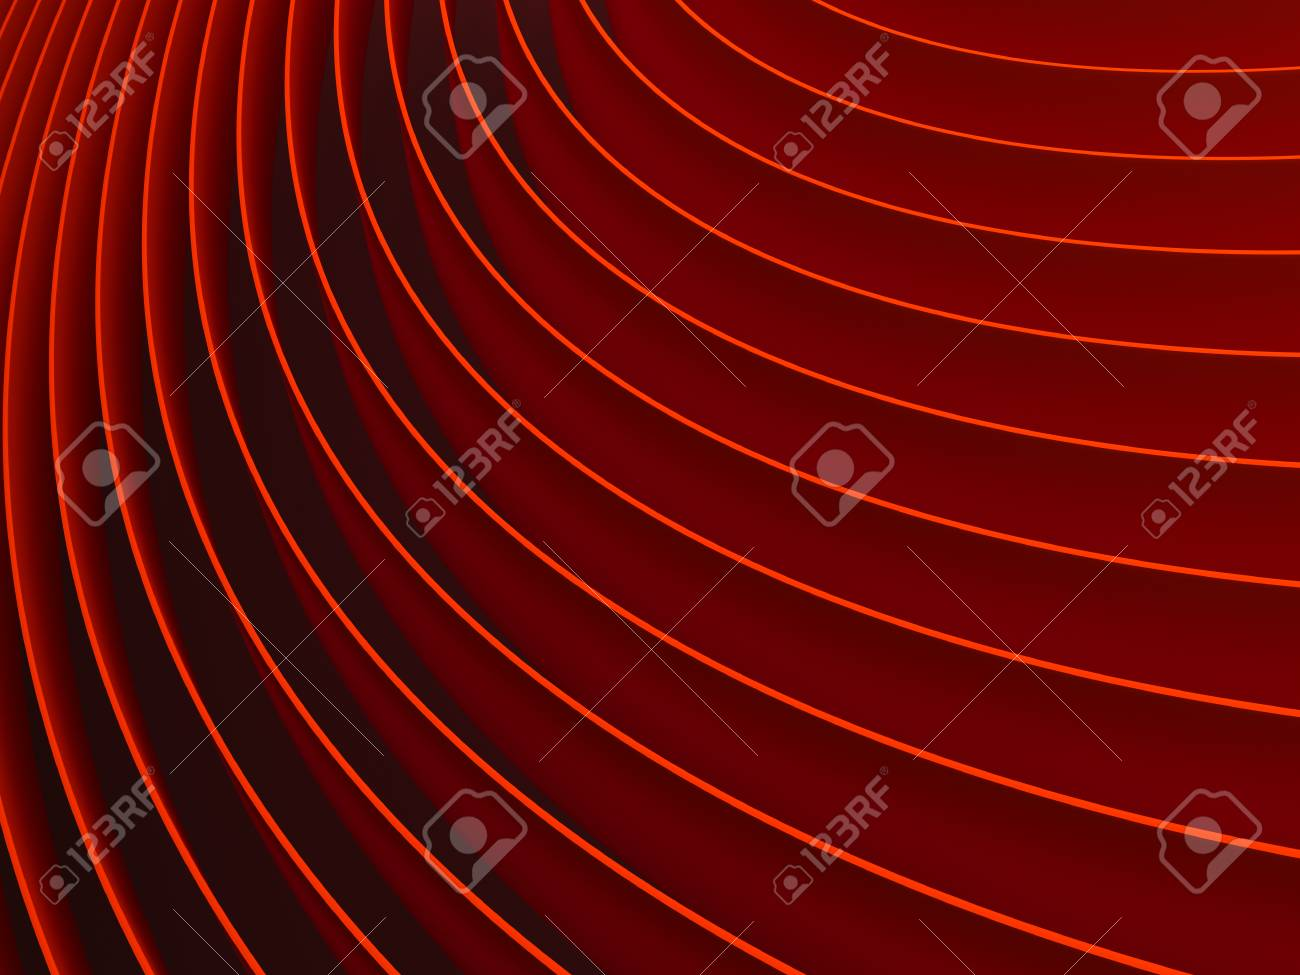 Red High Resolution Geometric Background Texture Works Good For